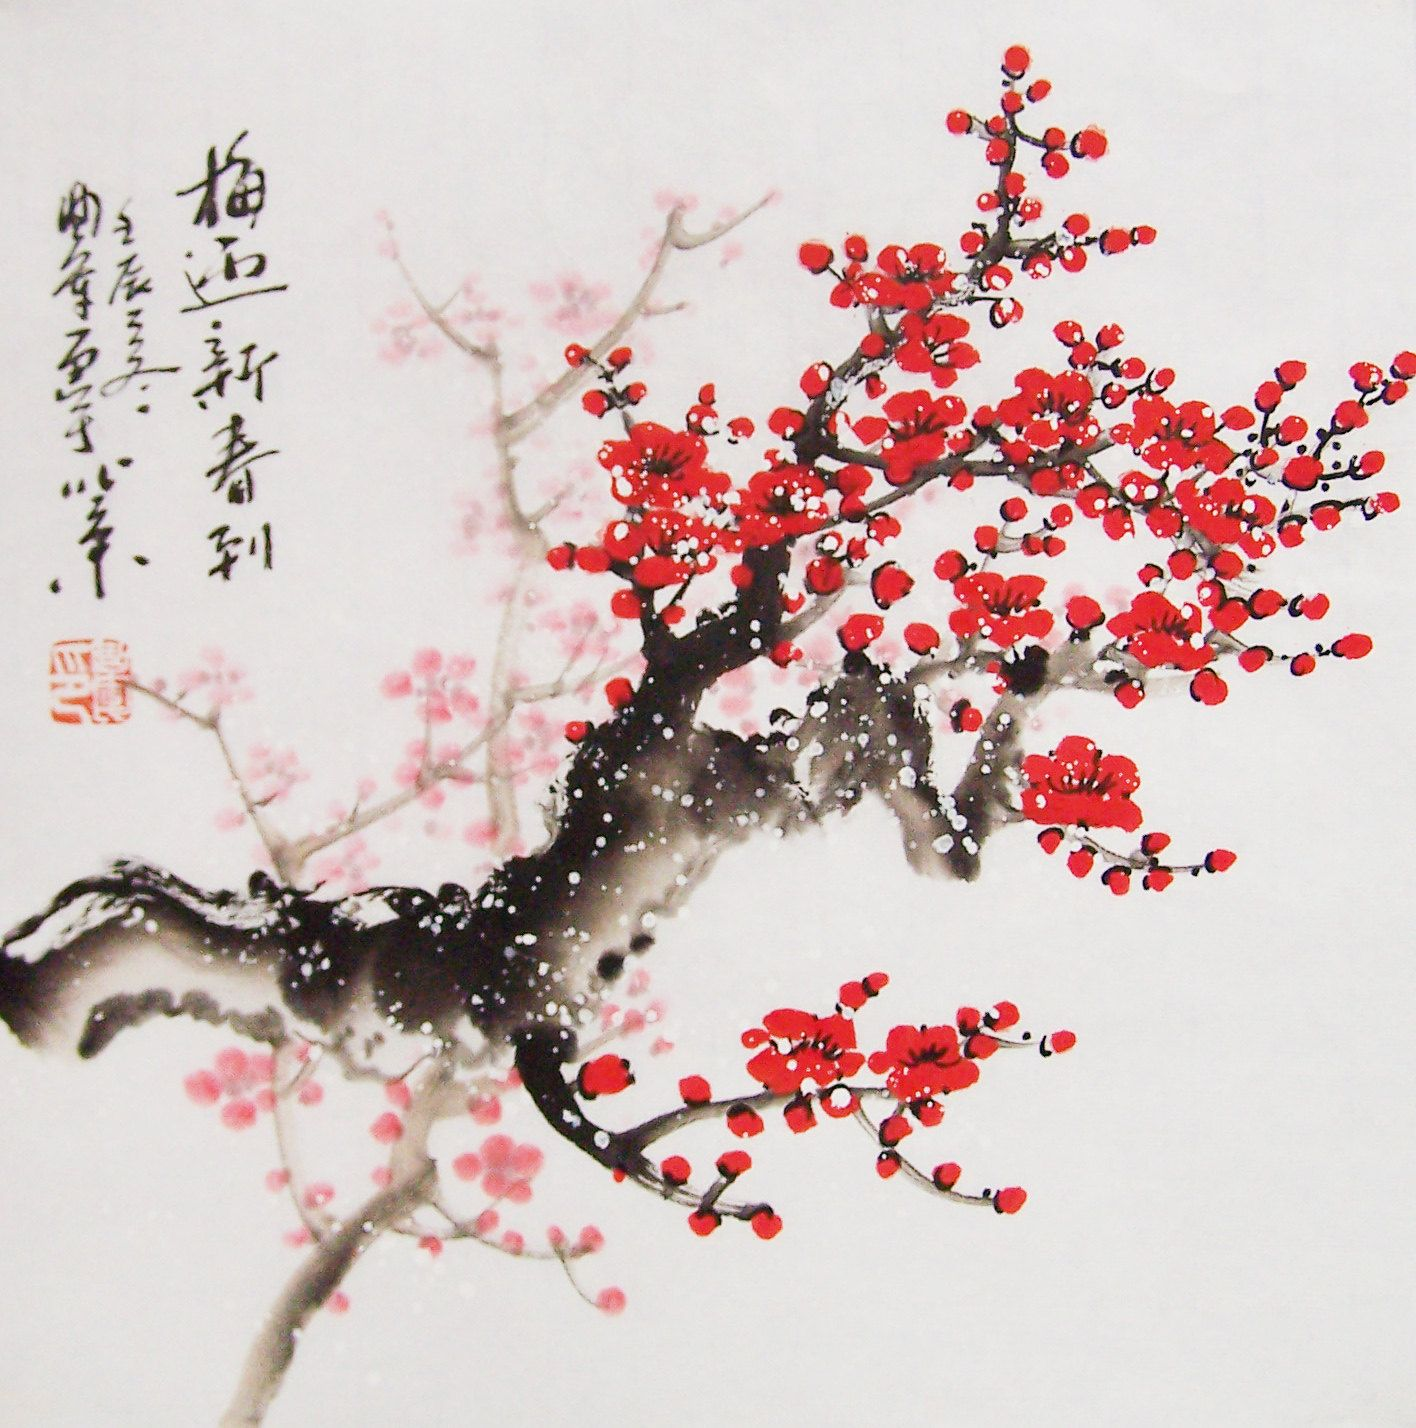 Japanese Cherry Blossom Drawing Google Search Japanese